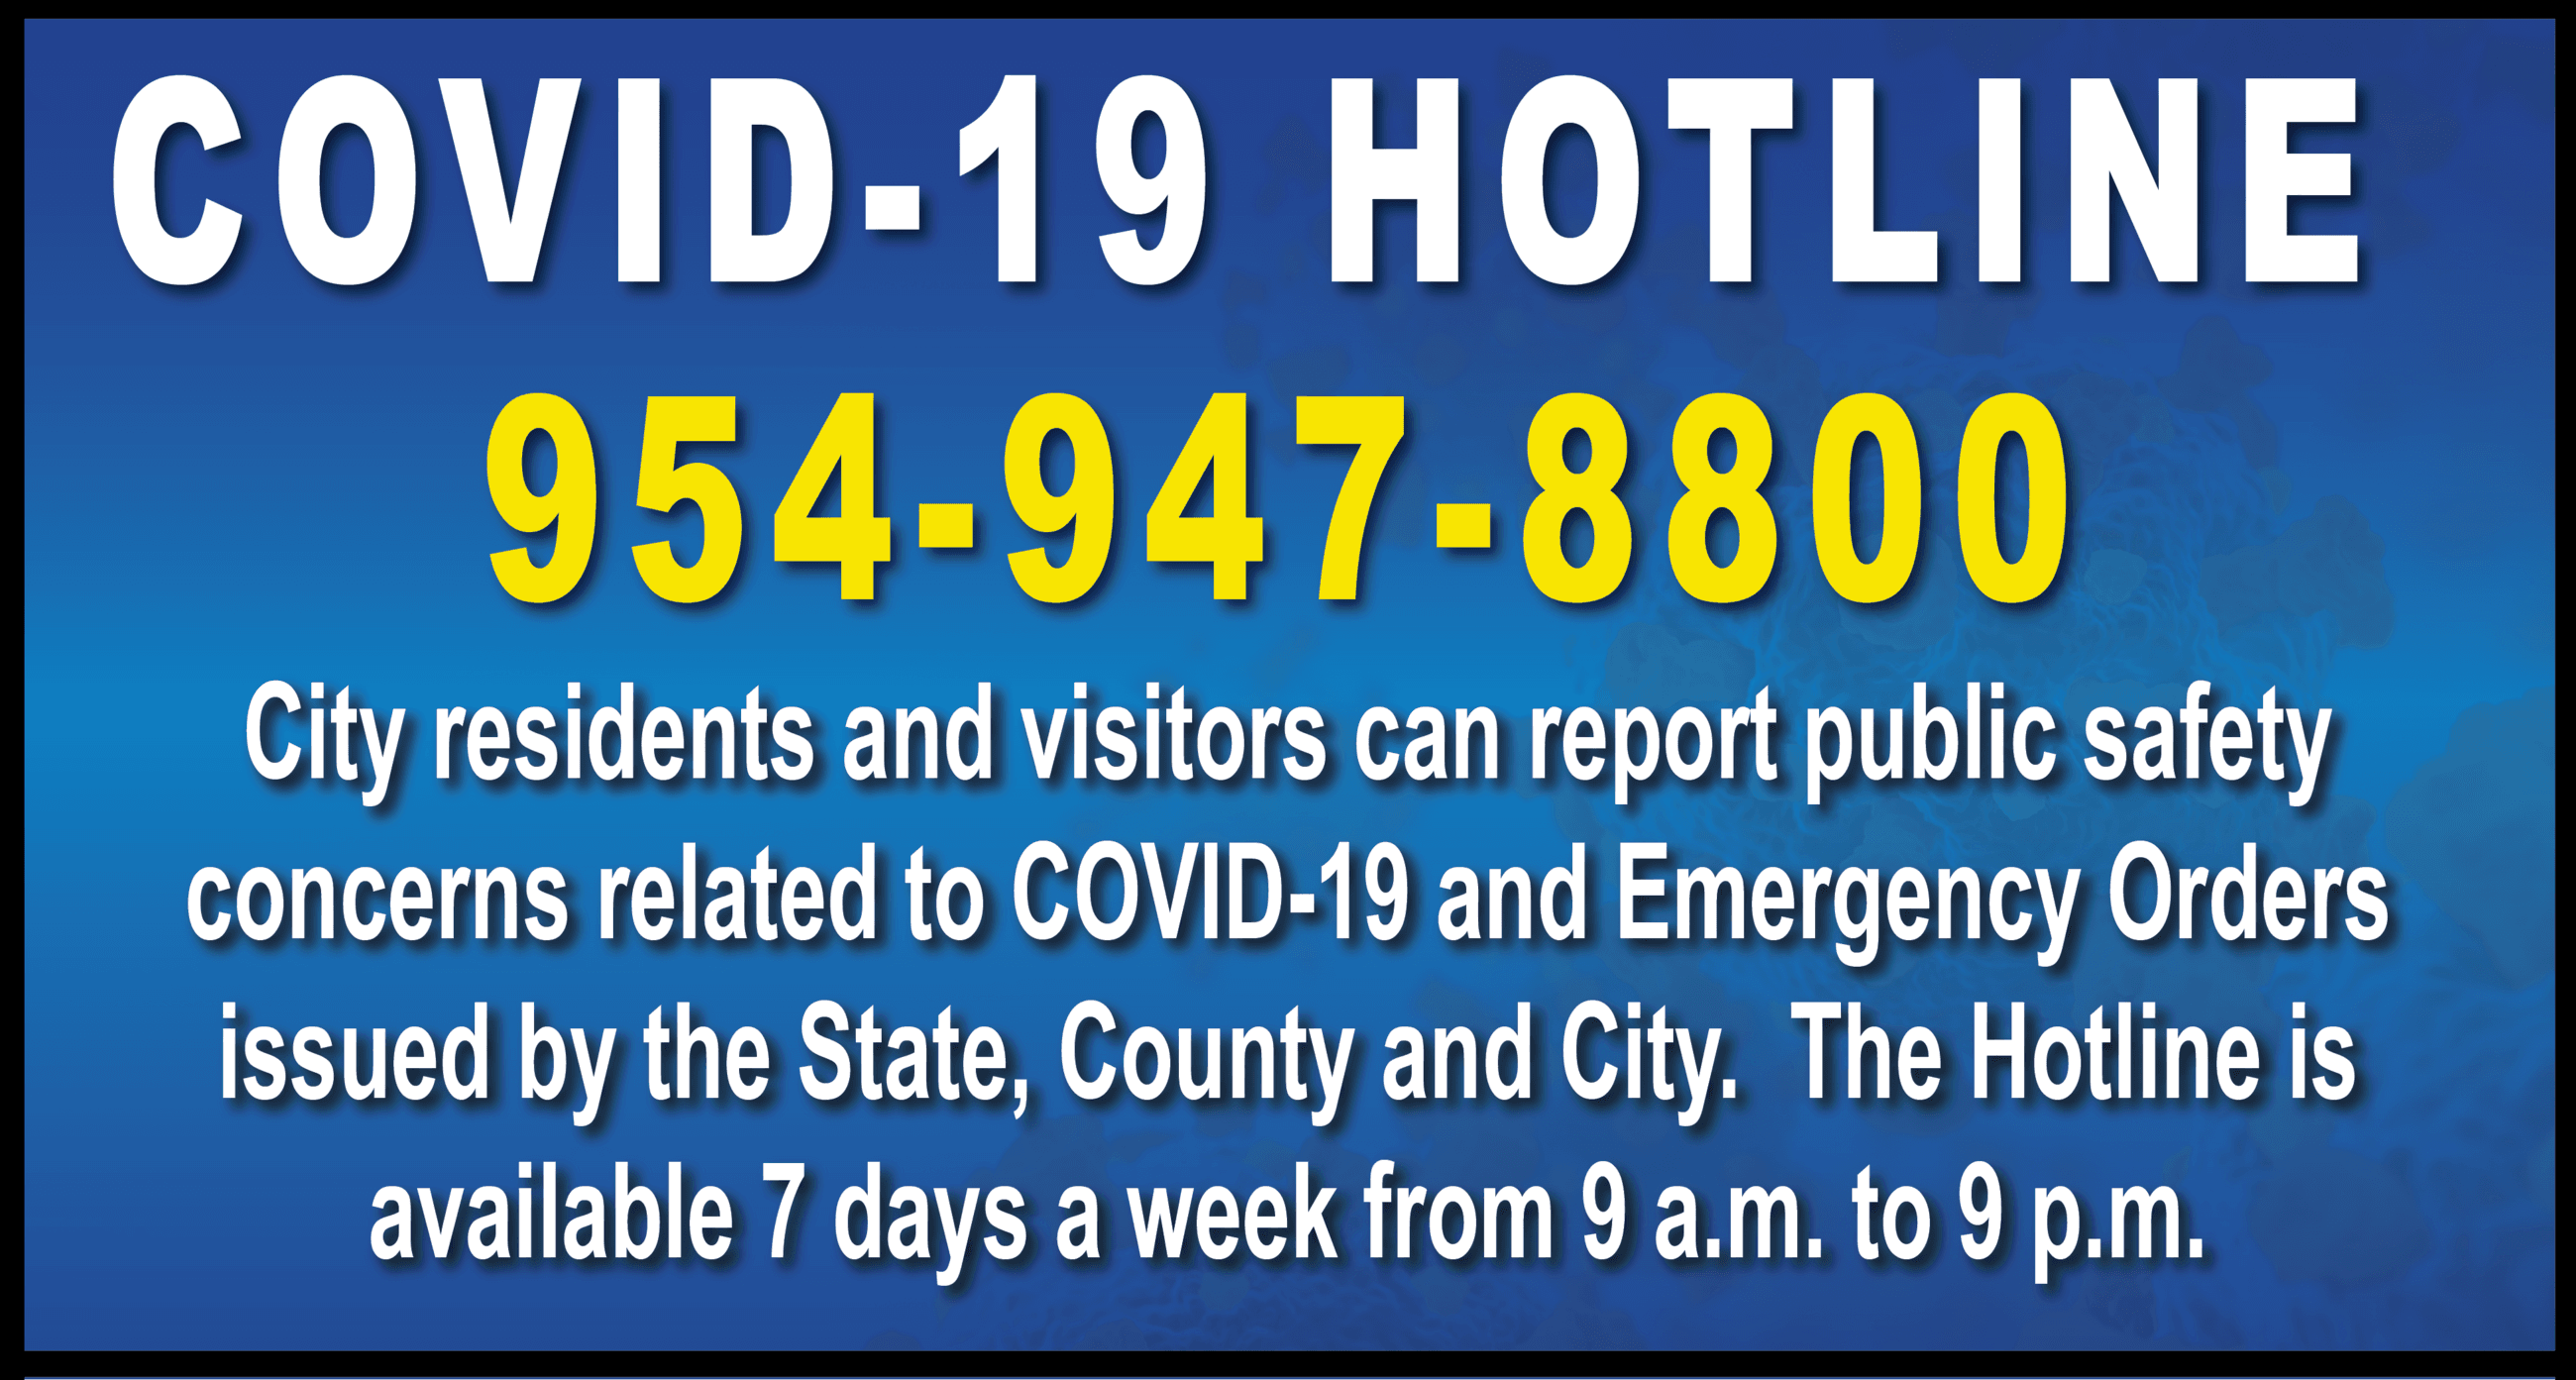 Covid19 HOTLINE Dania Beach